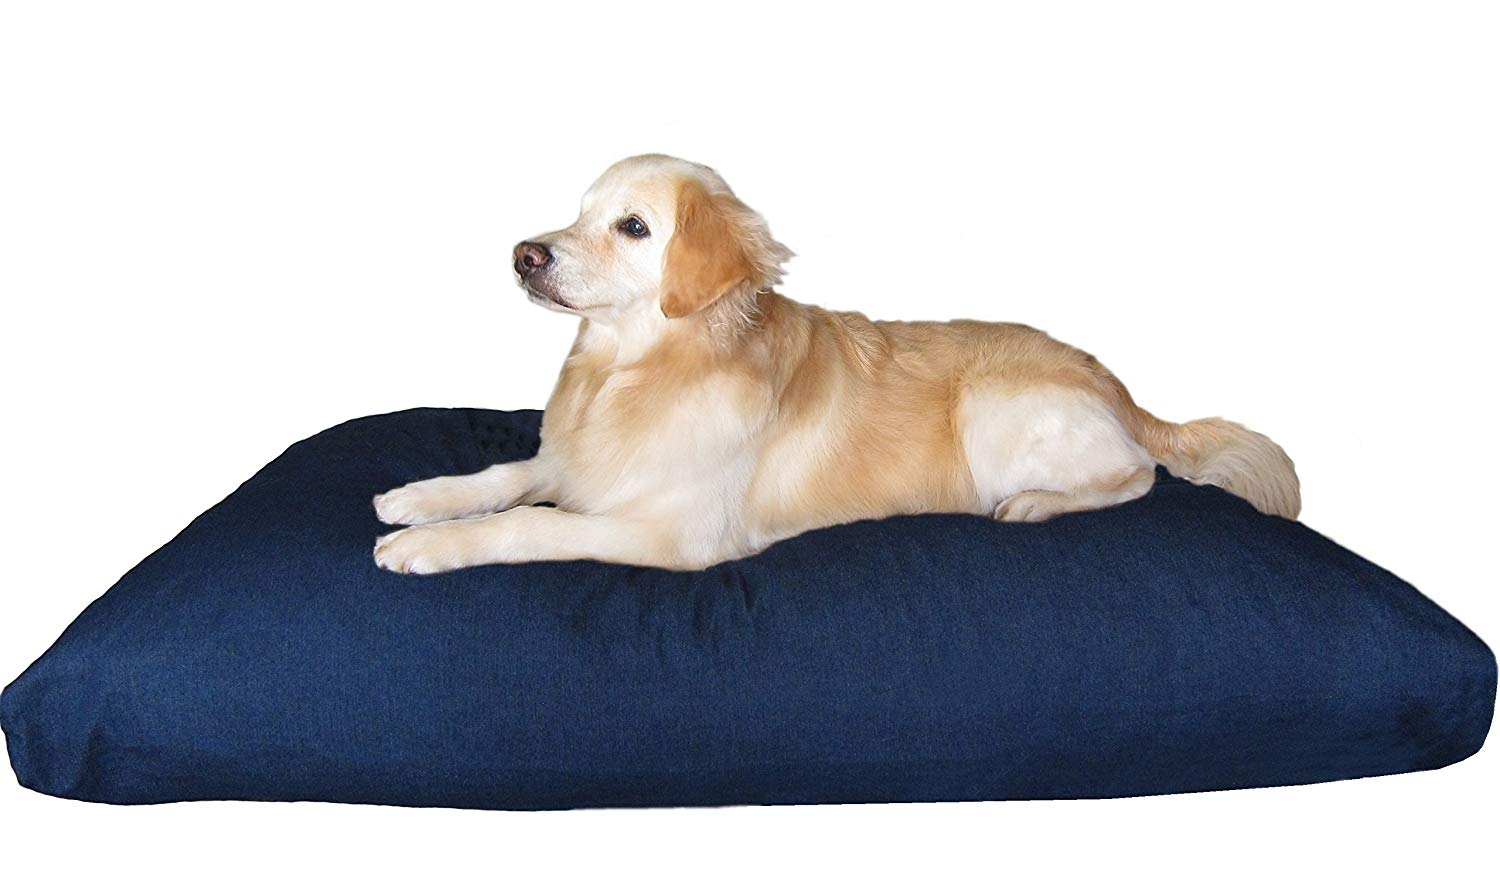 Dogbed4less XXL Extra Large Indestructible Memory Foam Pet Bed Pillow review by www.puppyurl.com